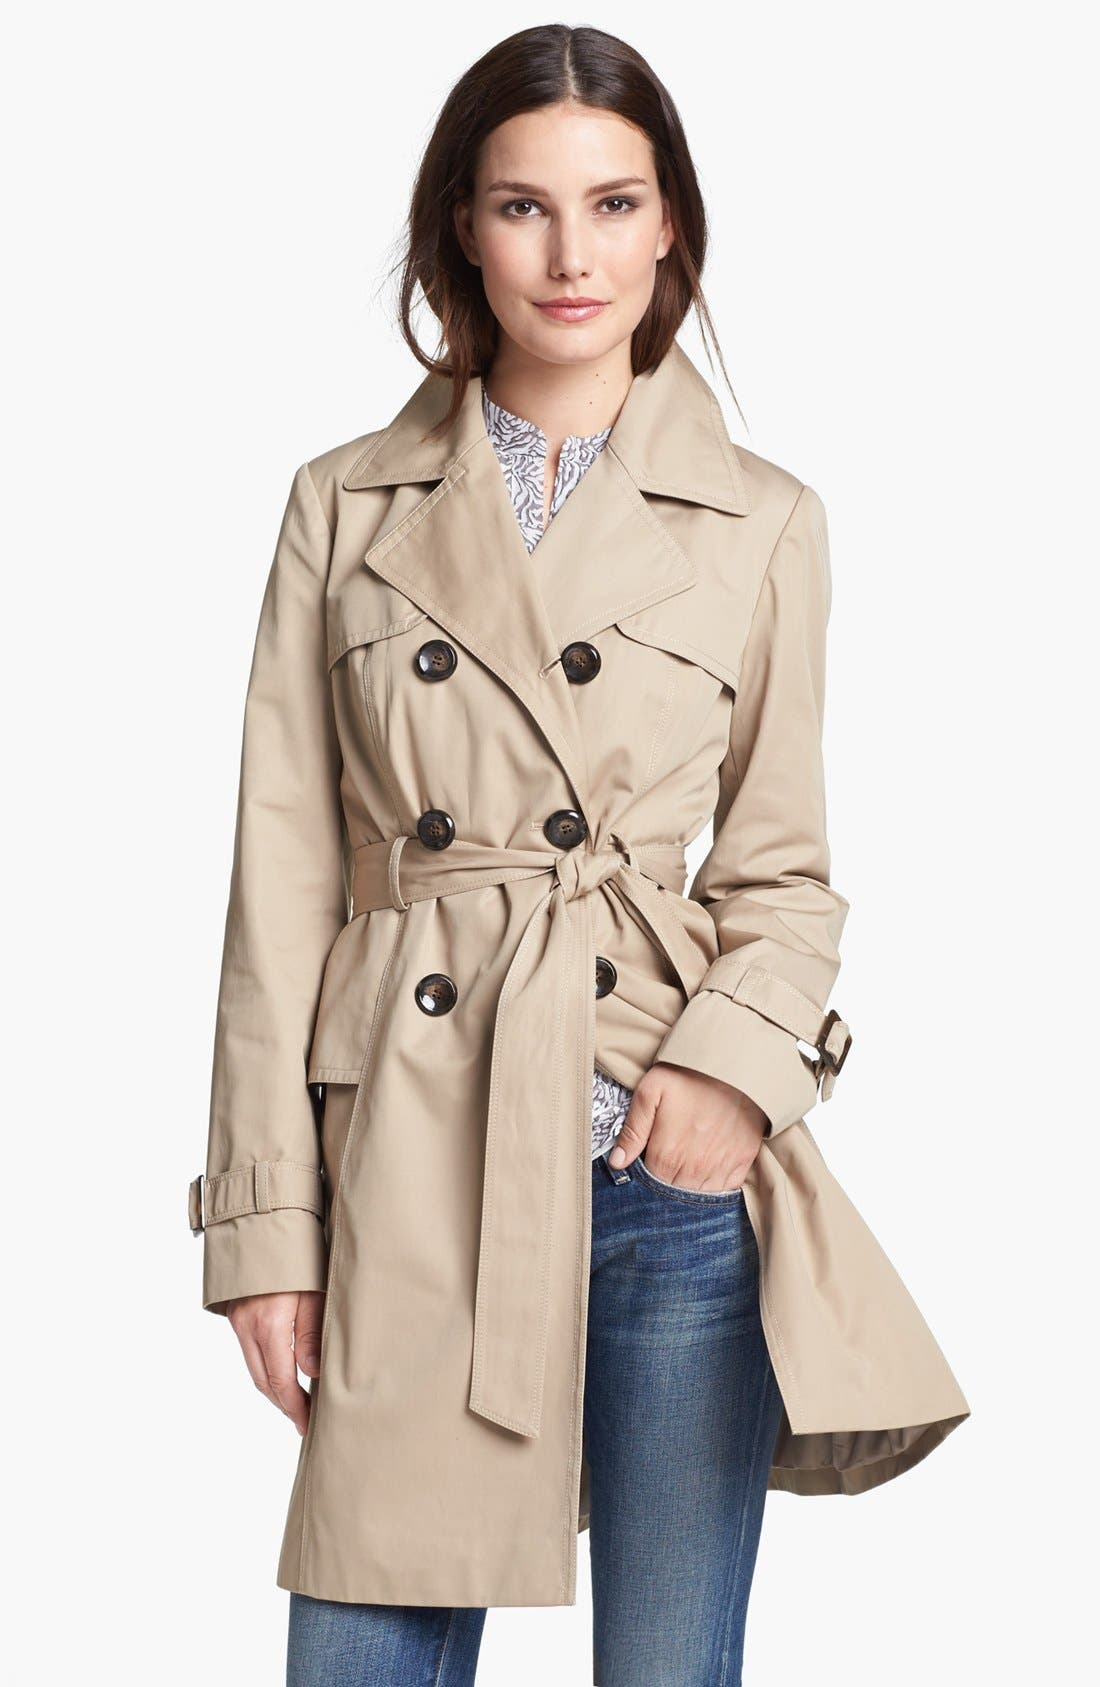 Alternate Image 1 Selected - Ellen Tracy Double Breasted Trench Coat (Regular & Petite)